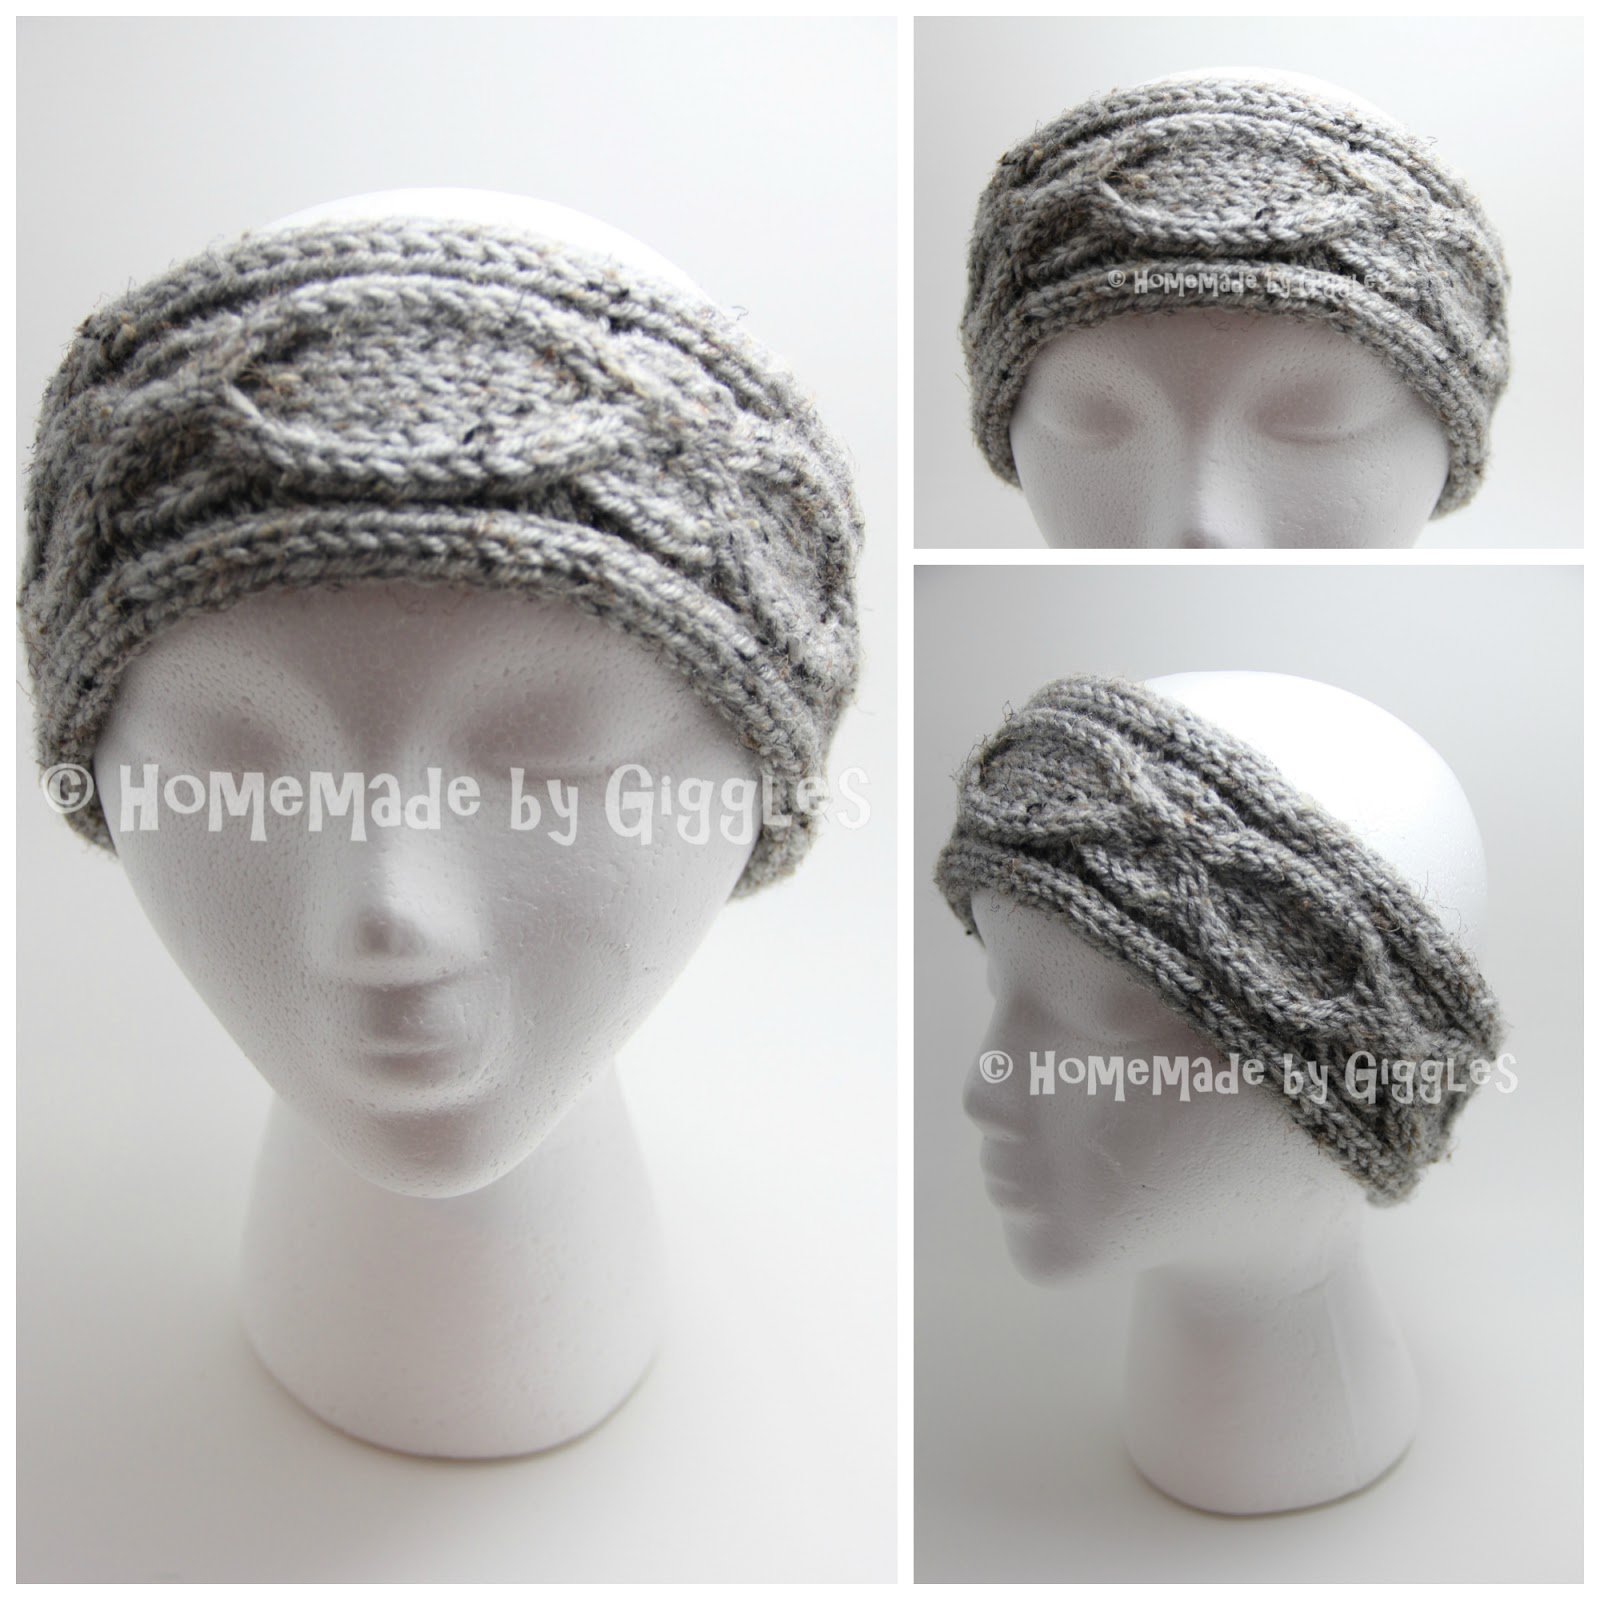 Homemade by Giggles: Twisted and Chain Cable Headbands - FREE Knit ...